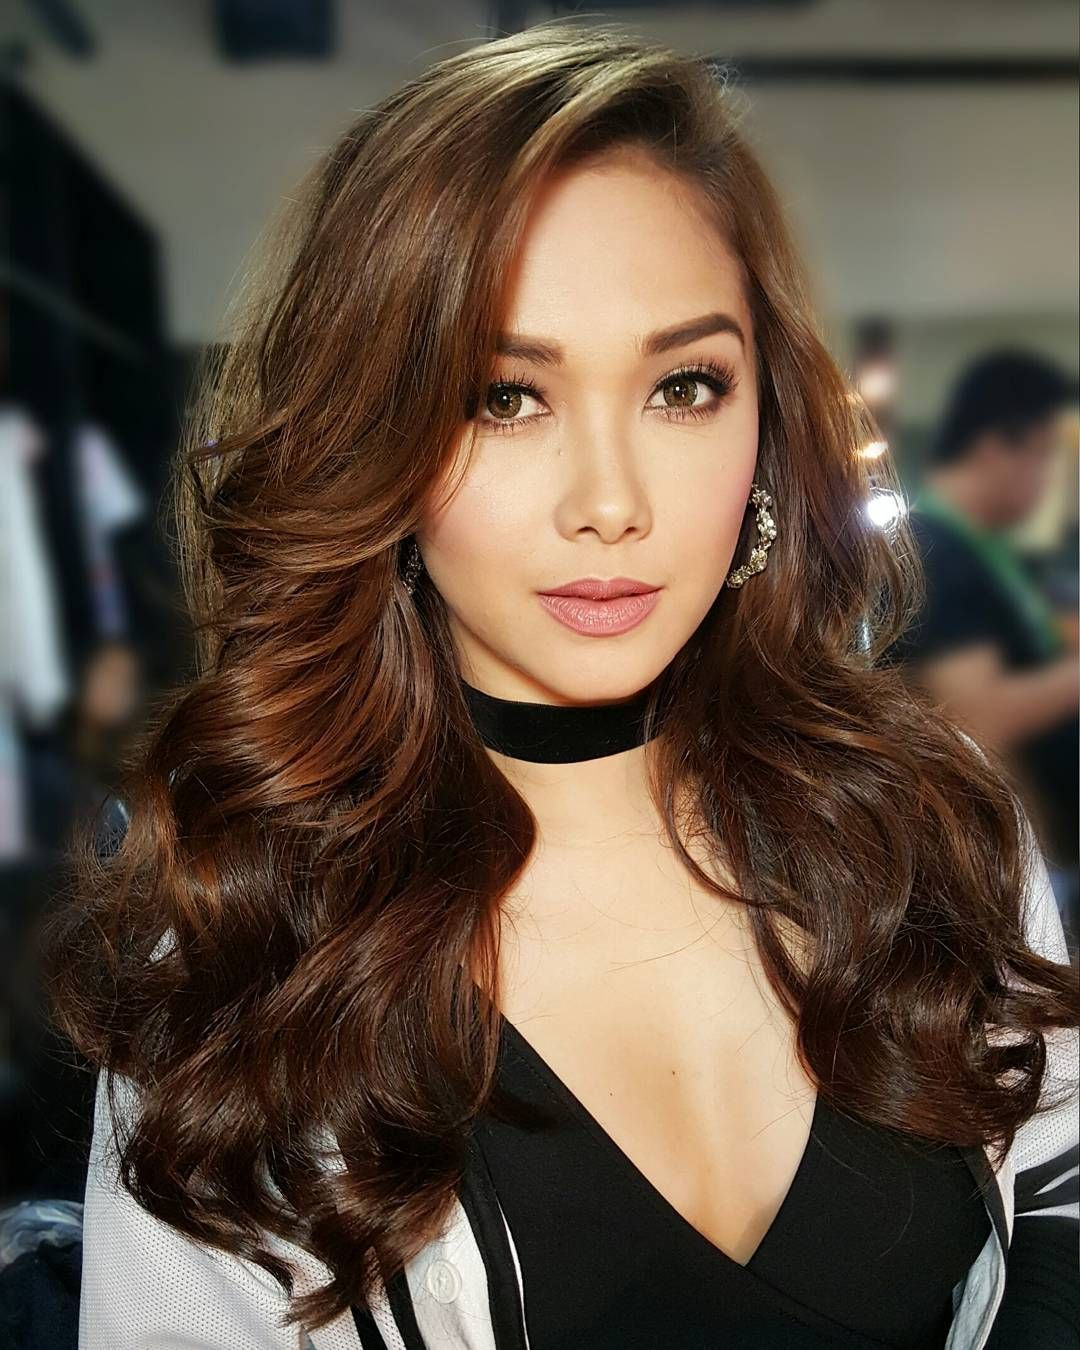 Maja Salvador Maja Salvador Hairstyle Beautiful Face